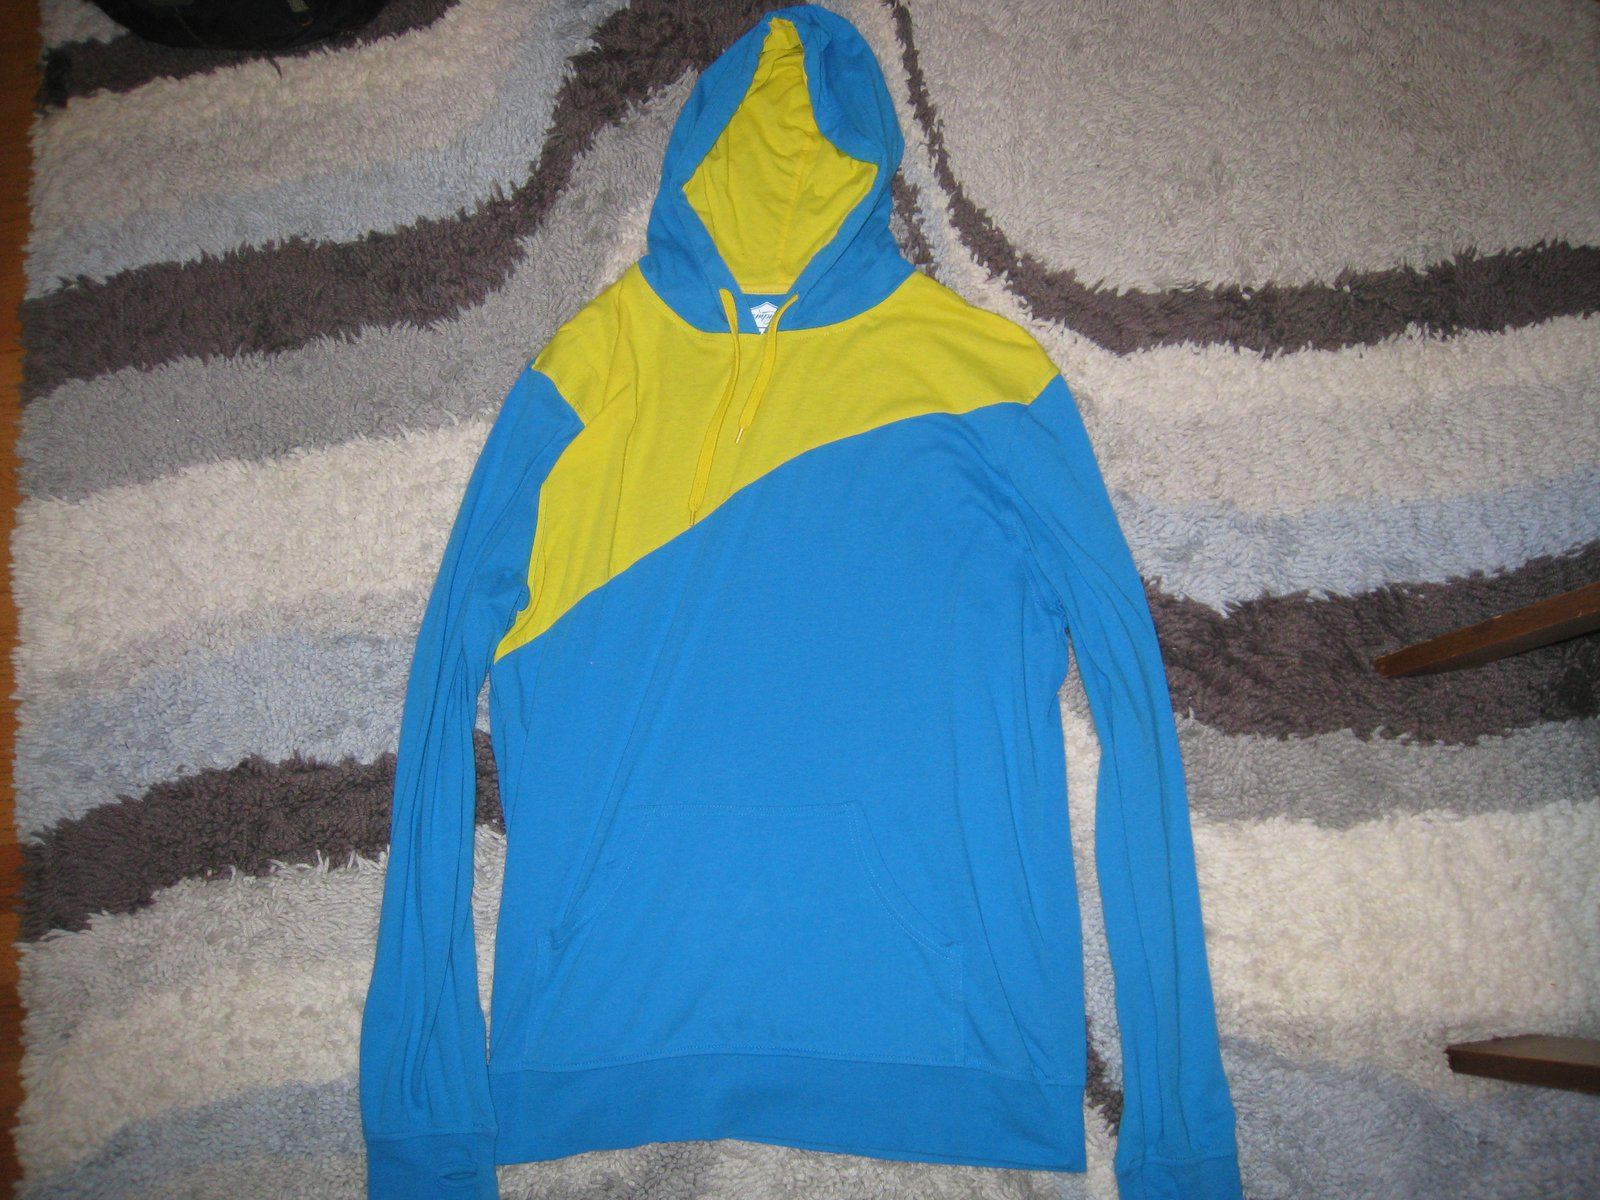 Empyre hoodie for sale